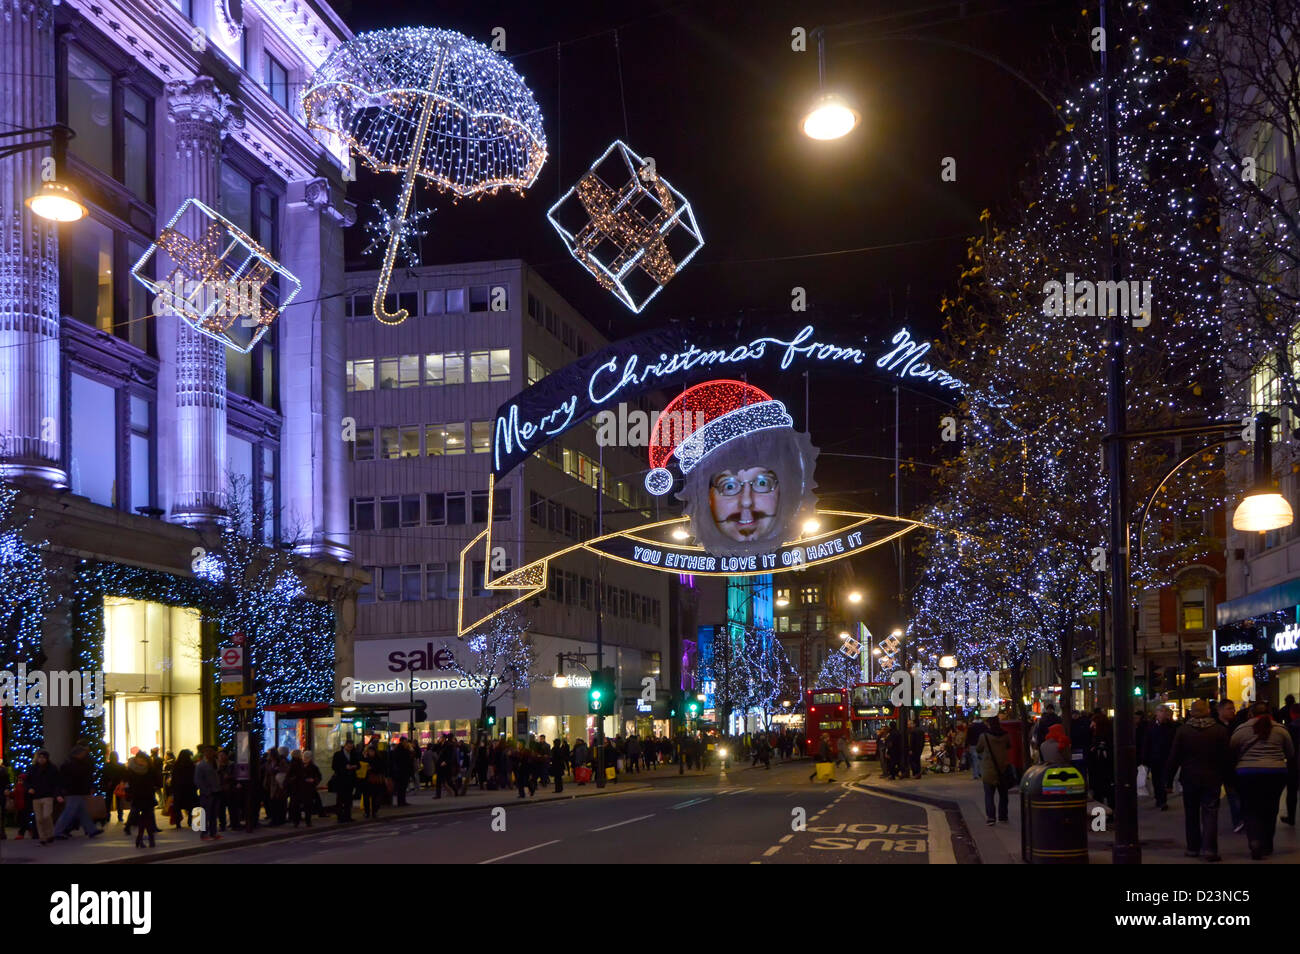 product advertisement for Marmite in Oxford Street Christmas decorations - Stock Image